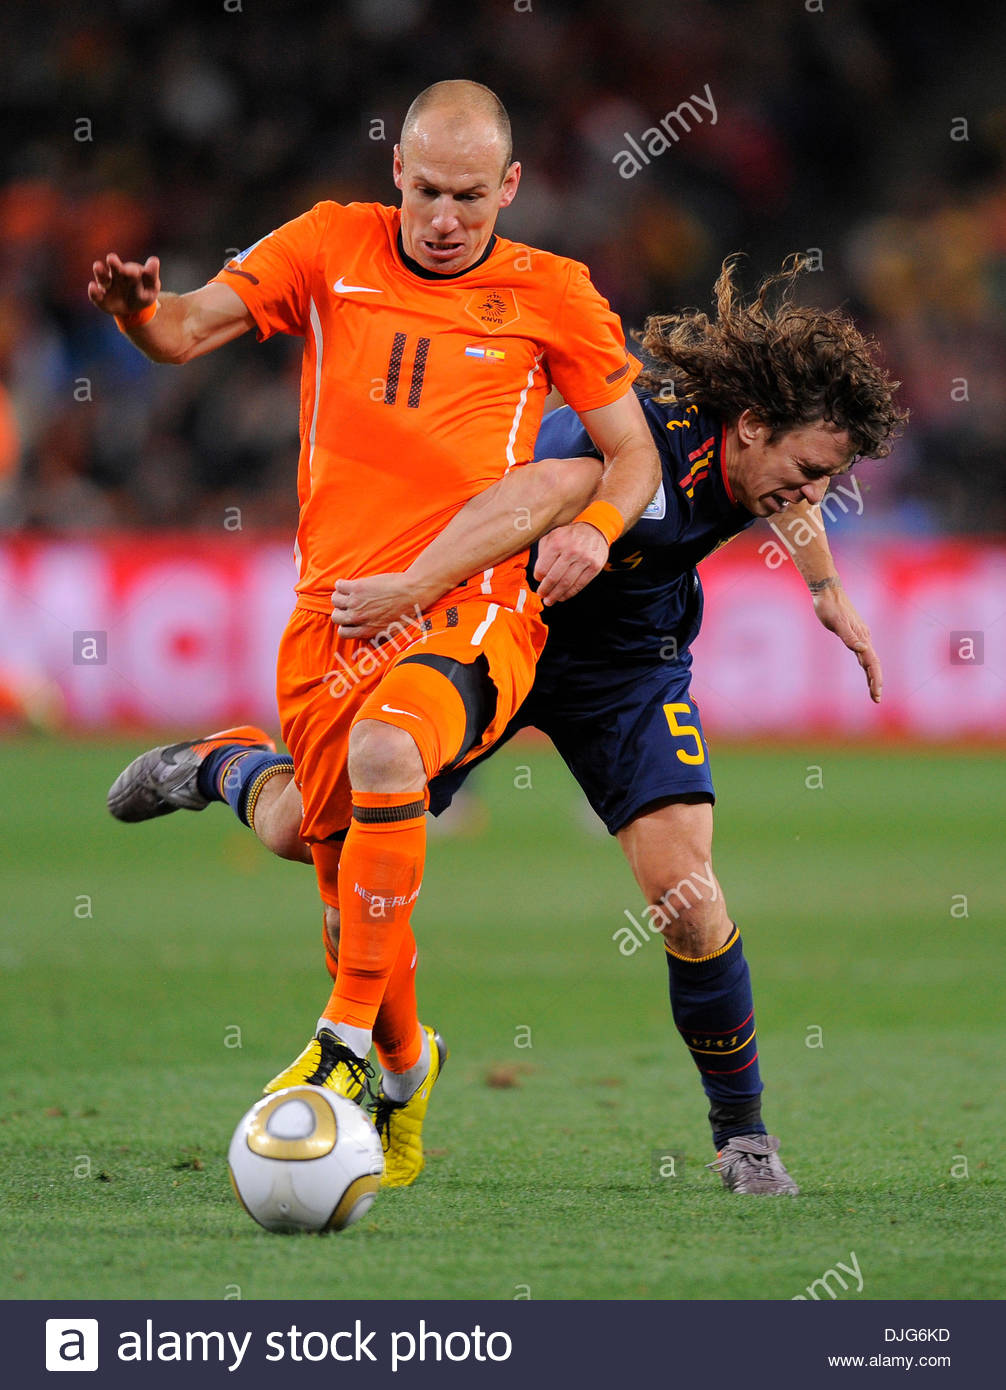 Arjen Robben of Netherlands tangles with Carles Puyol of Spain